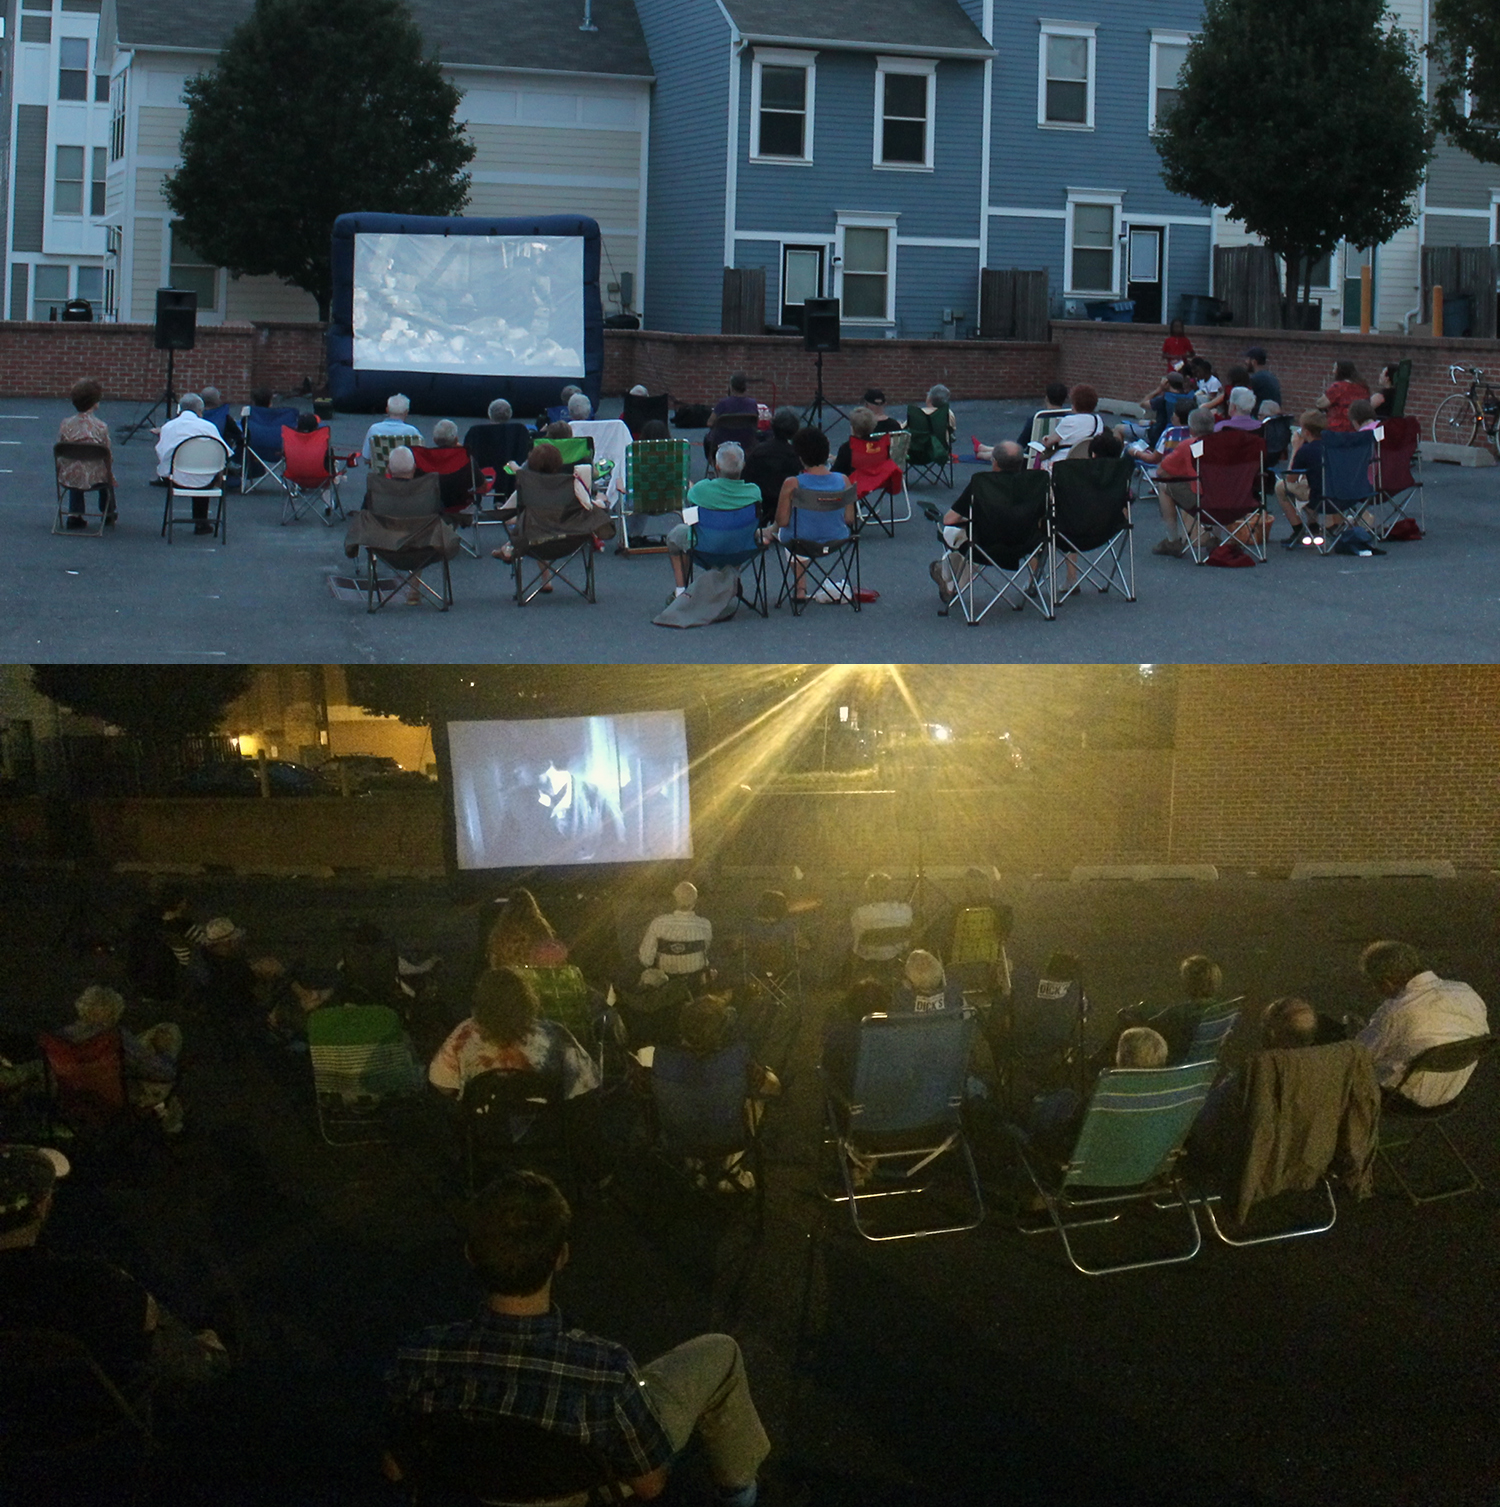 Outdoor film screenings of The Great Dictator and Gentleman's Agreement